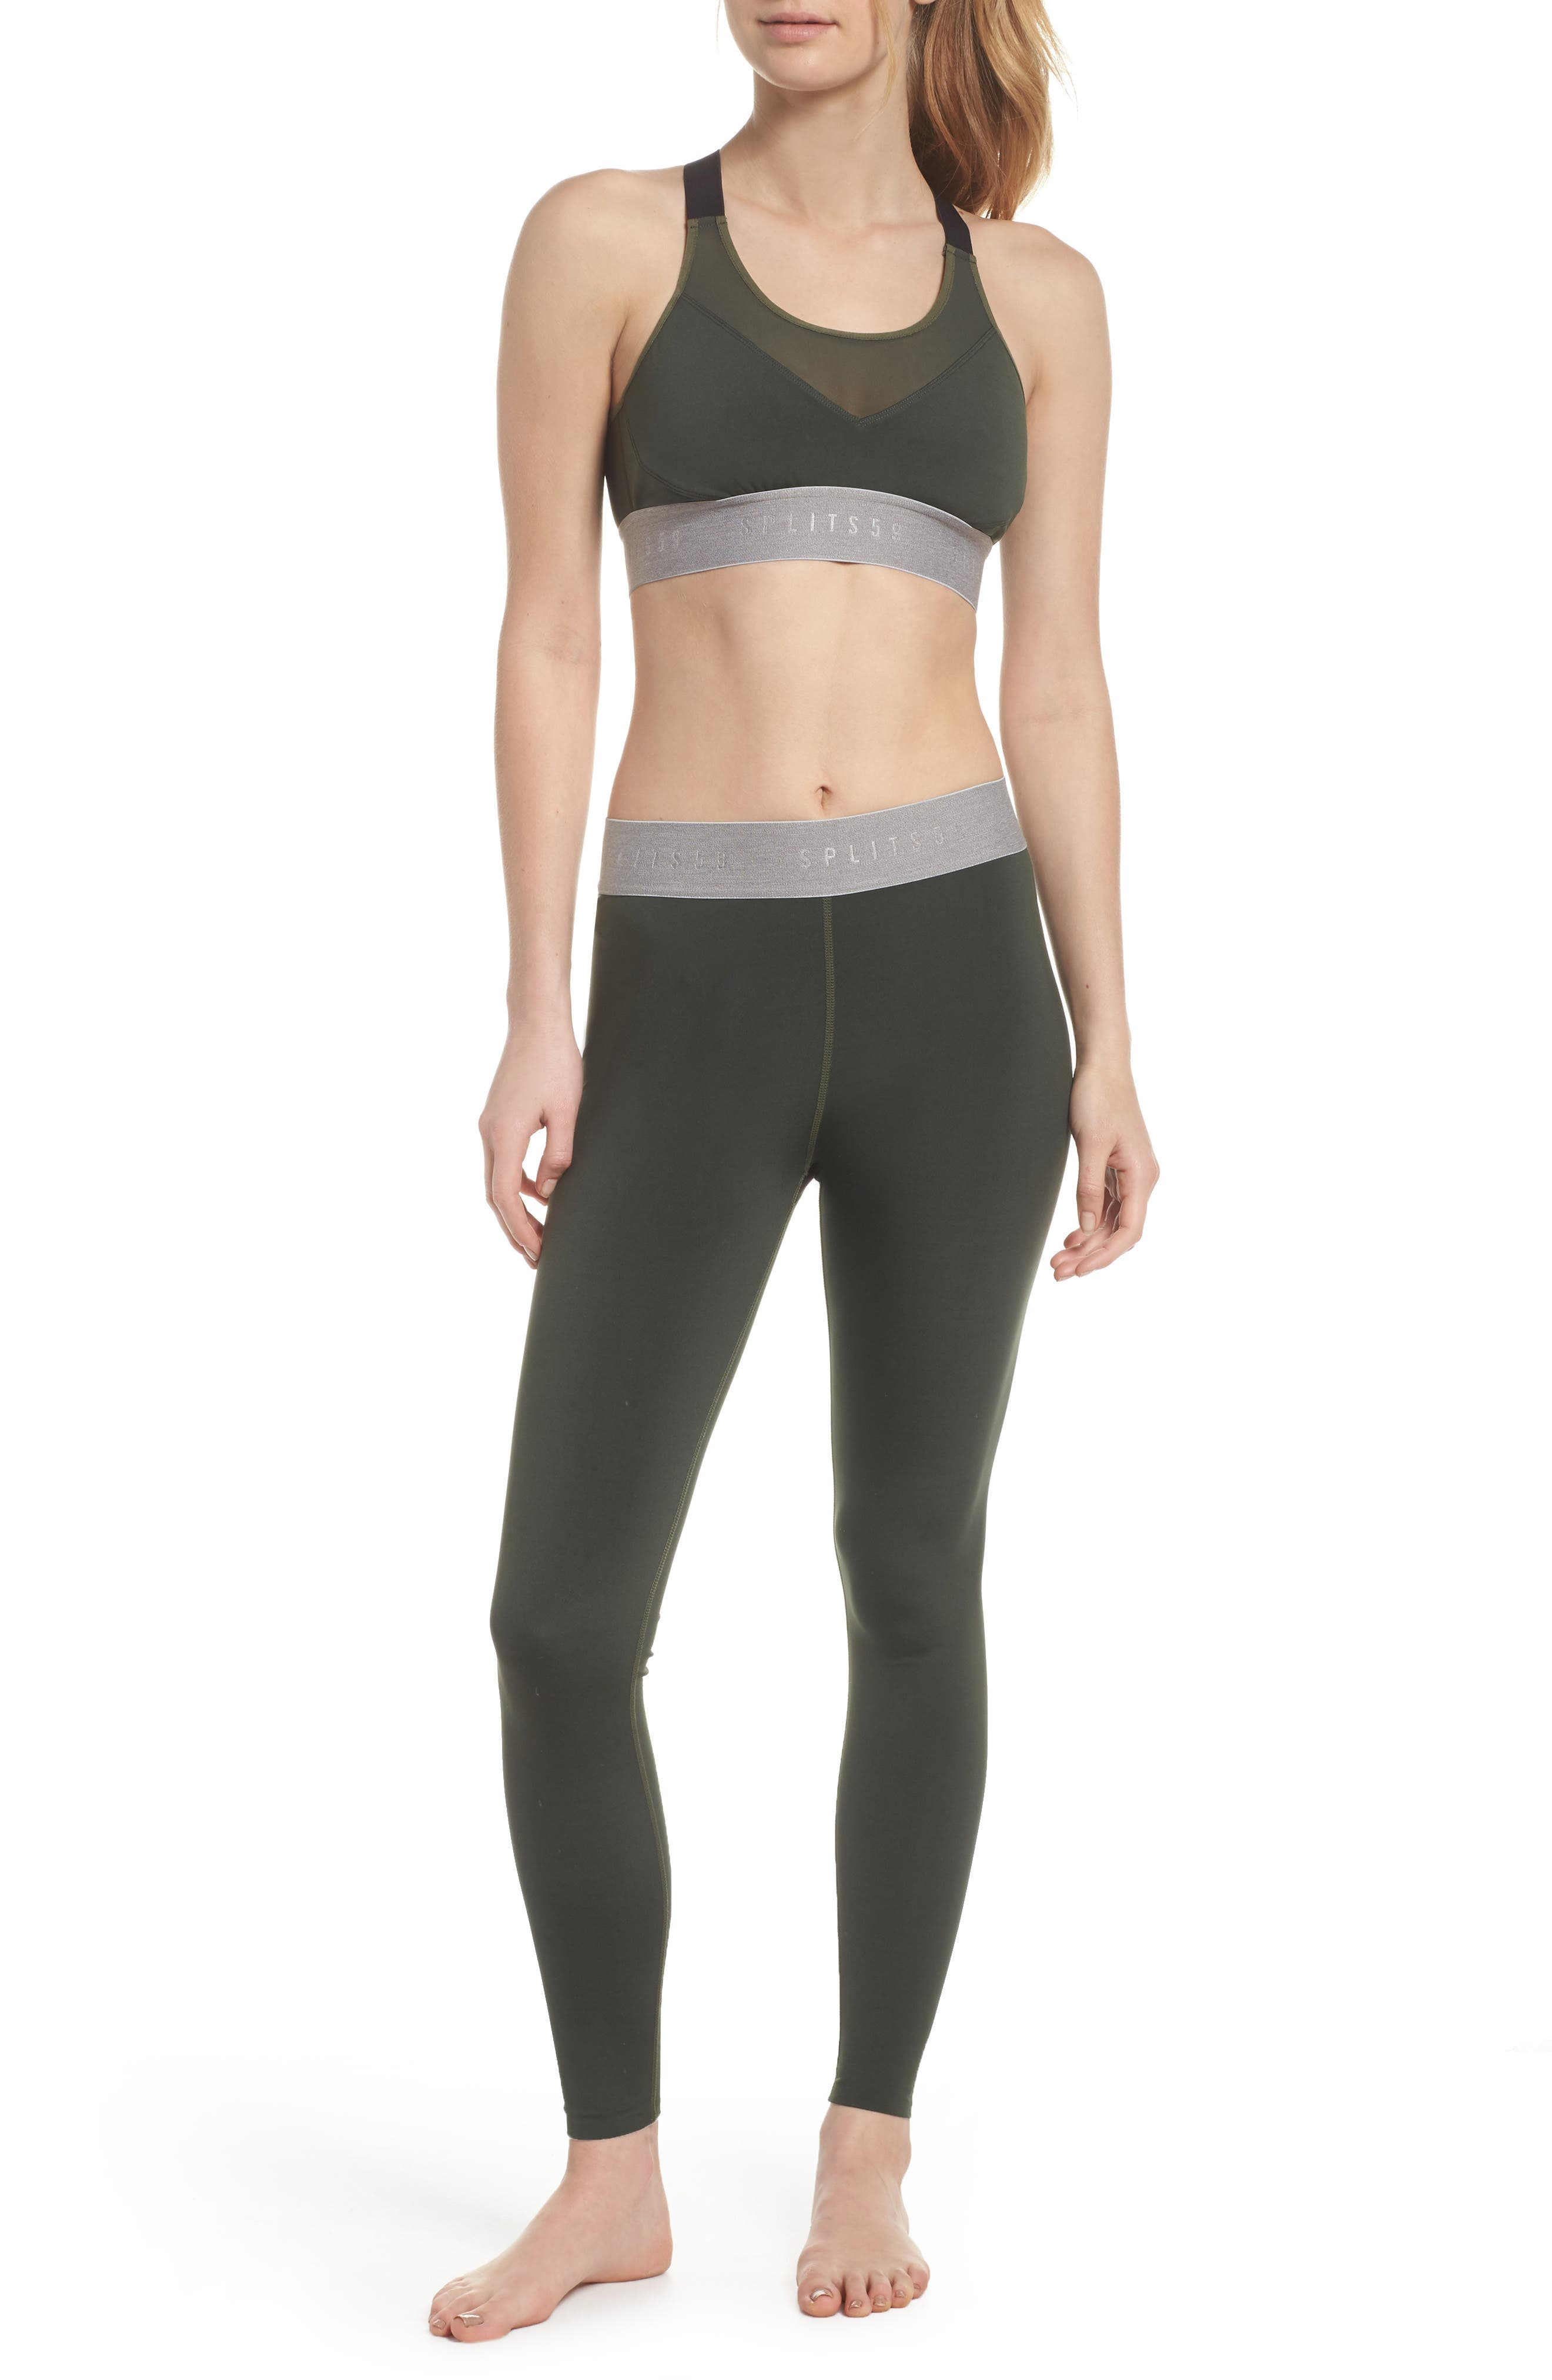 Tempo Ankle Tights,                             Alternate thumbnail 8, color,                             Army